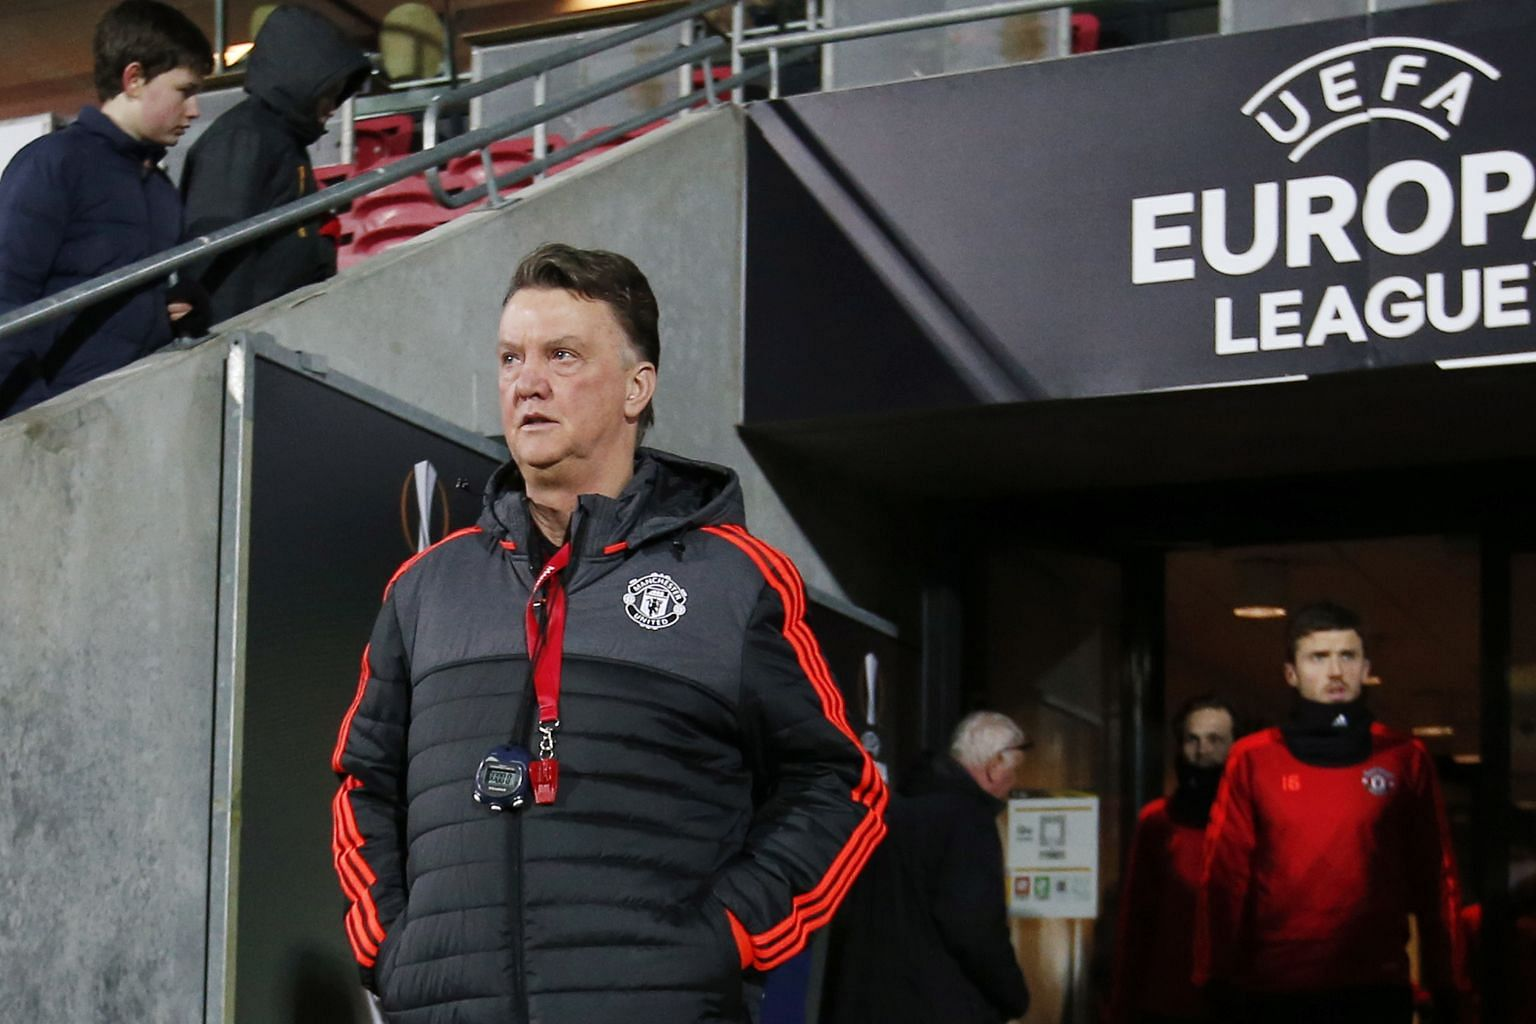 A pensive United manager Louis van Gaal before training in Denmark ahead of last week's game against Midtjylland, who stunned his team 2-1 in the Europa League round of 32 first leg.